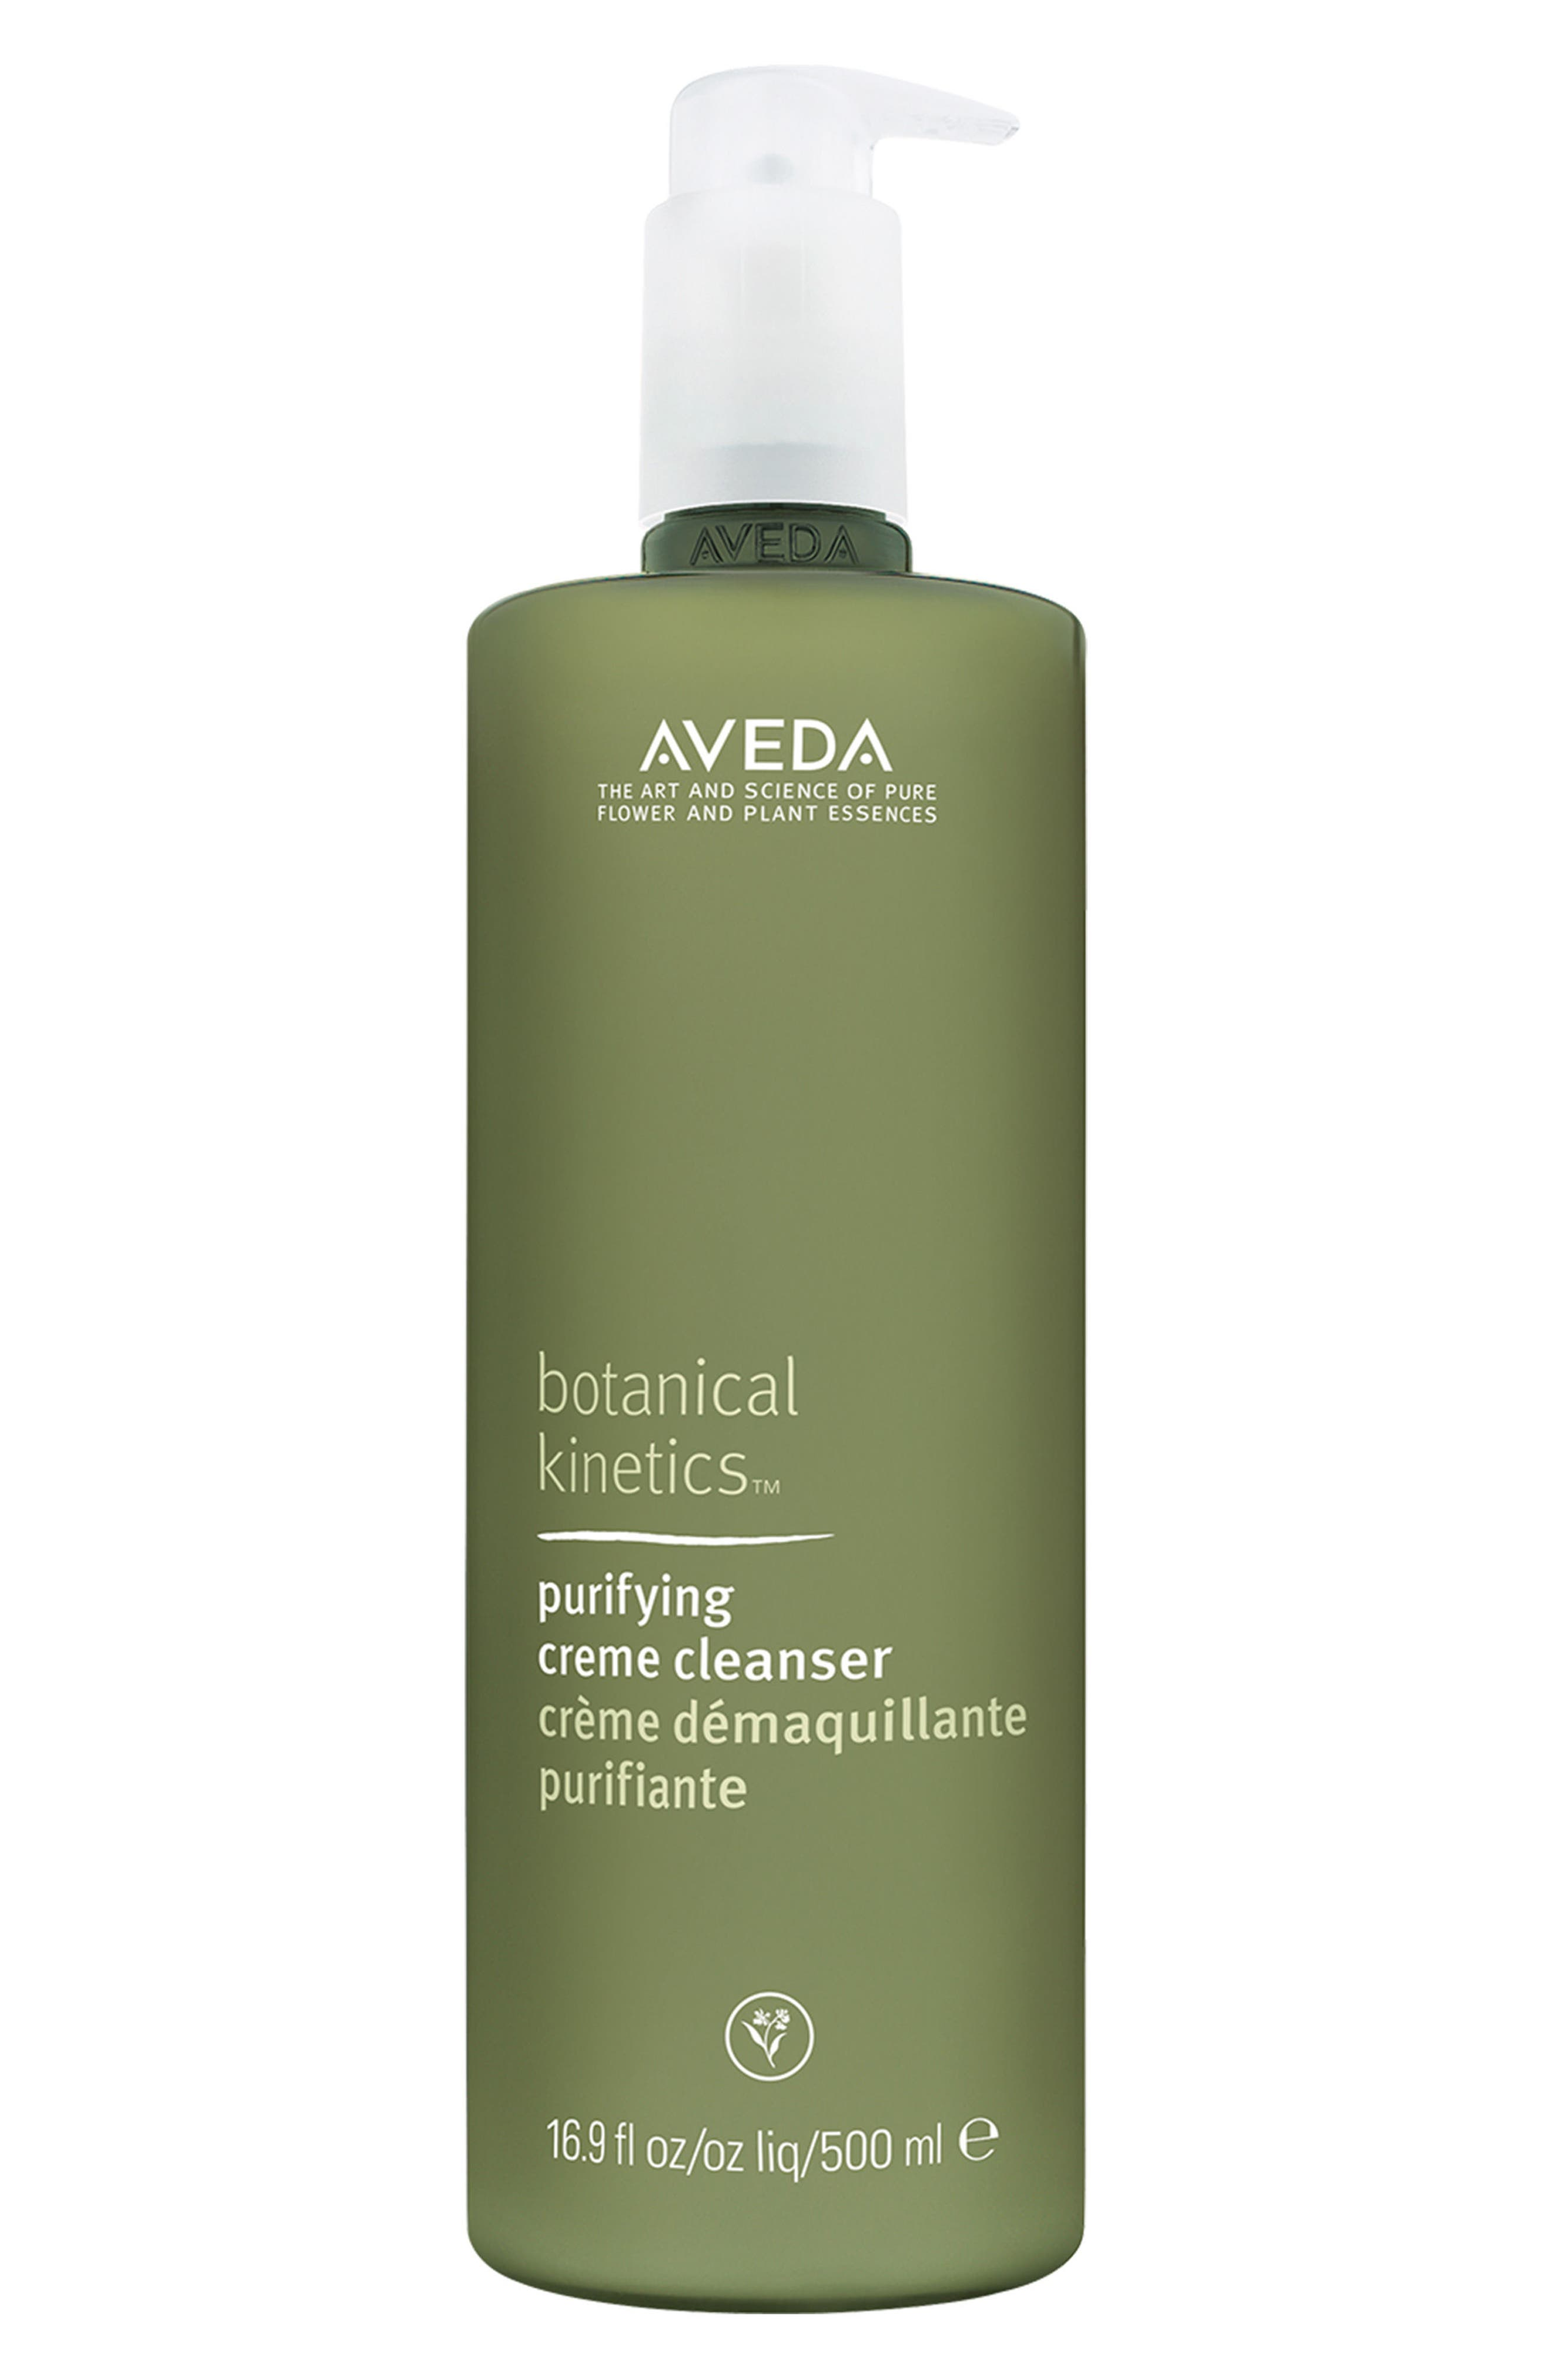 Aveda botanical kinetics™ Purifying Creme Cleanser